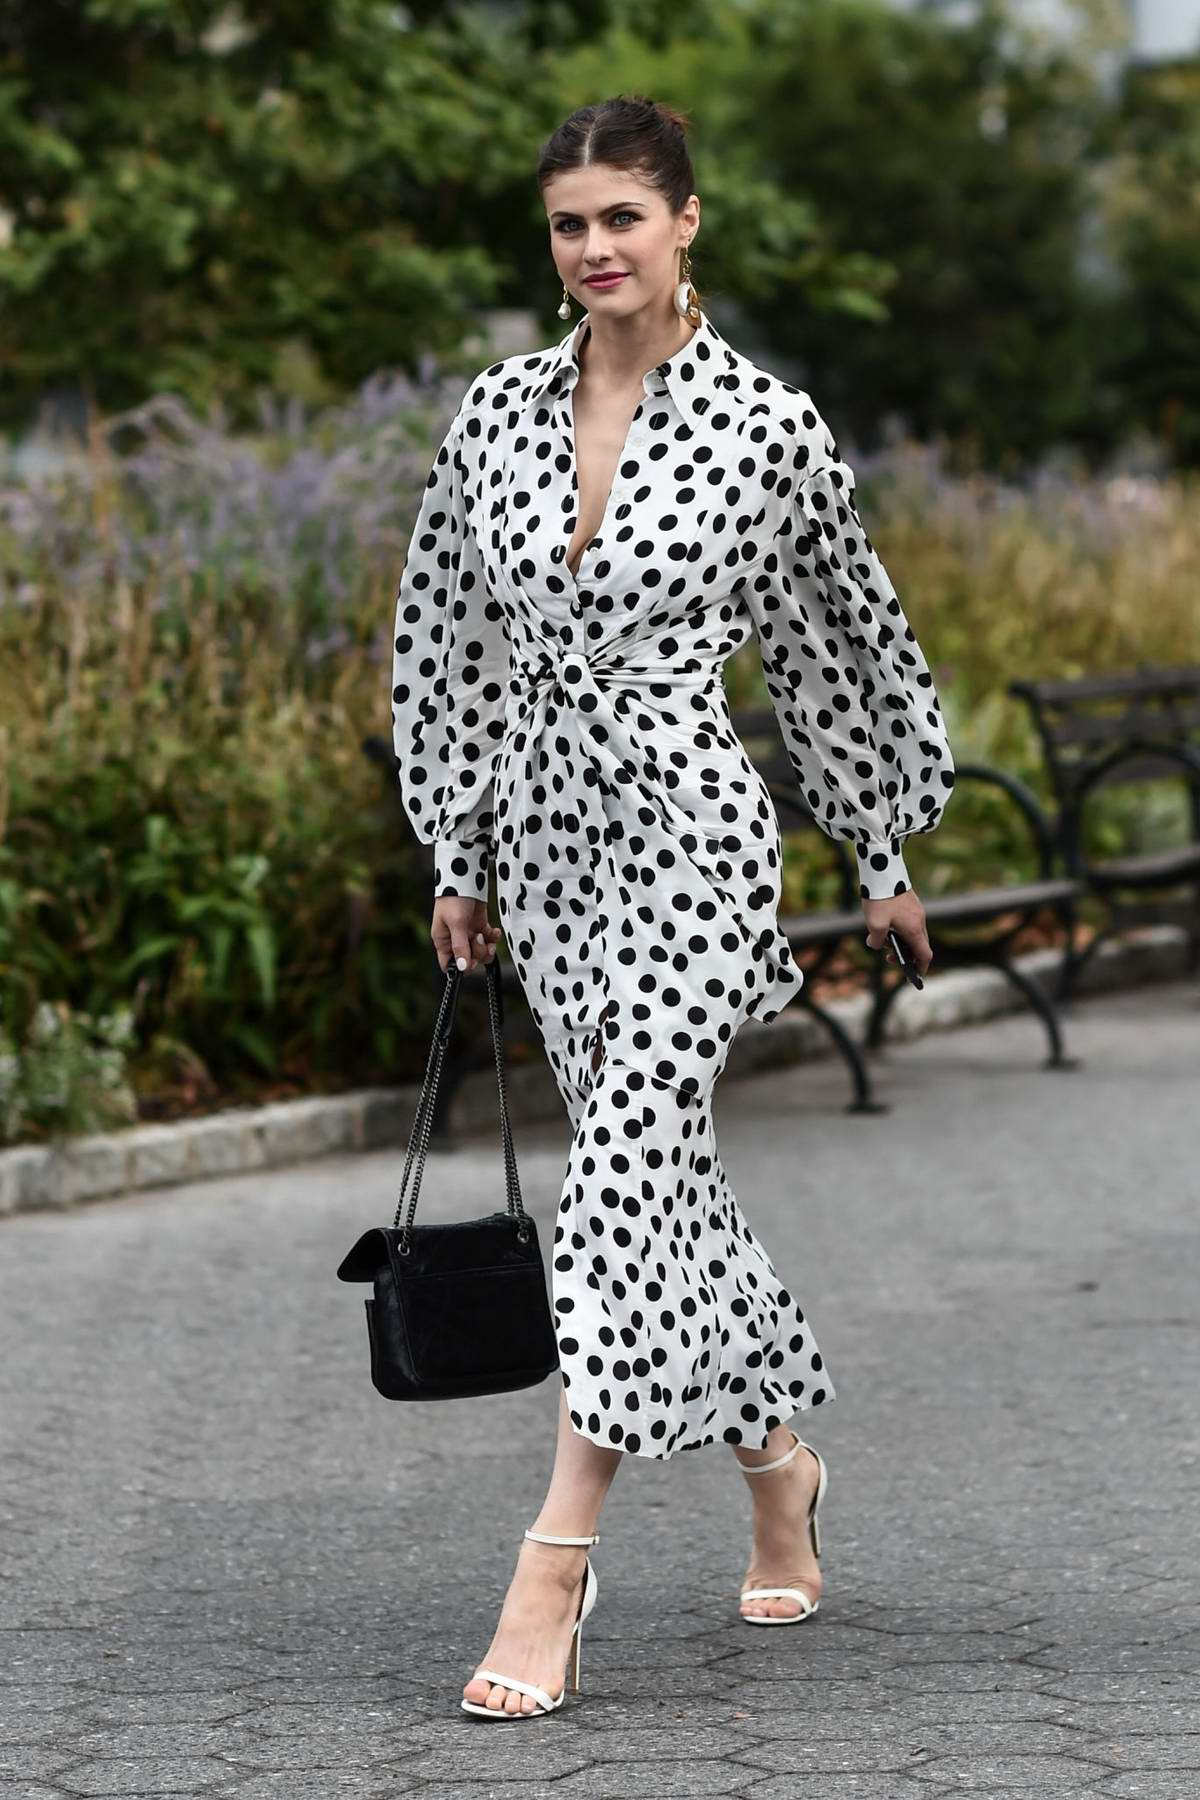 Alexandra Daddario looks gorgeous in a polka dot dress while attending Carolina Herrera Show during NYFW in New York City